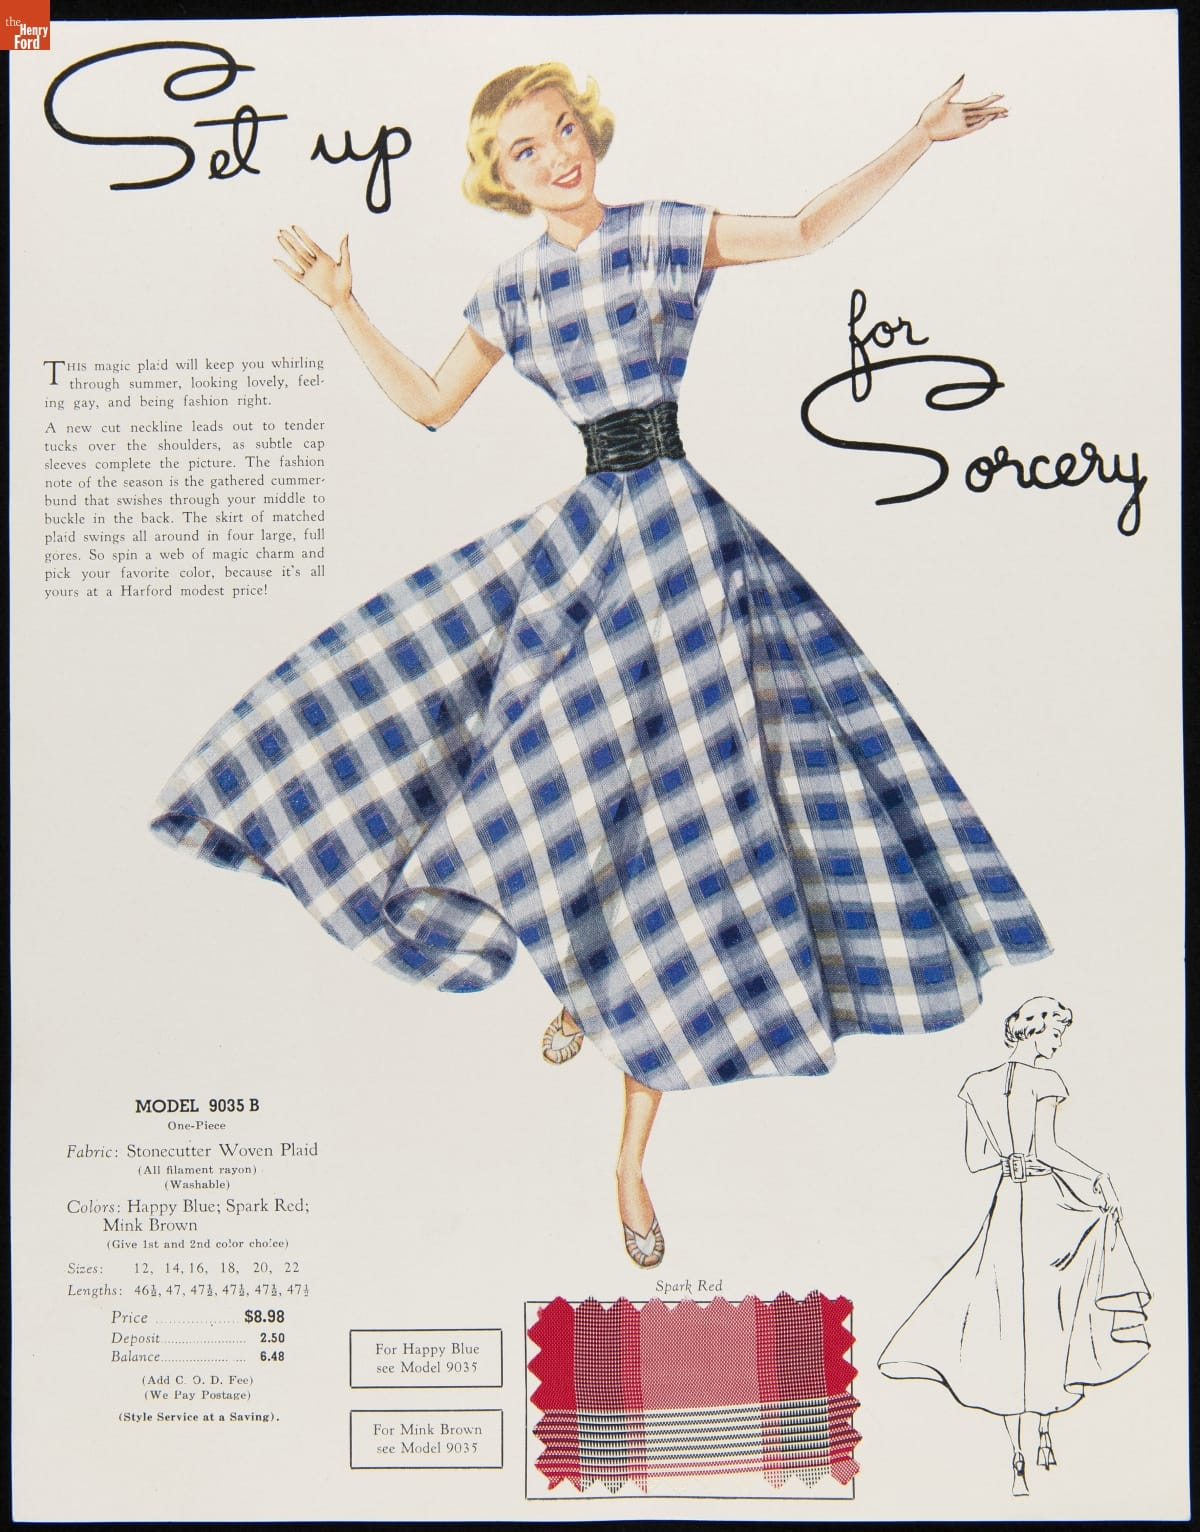 Illustration of blonde-haired woman in blue and white plaid dress and wide black belt; page also contains smaller black-and-white line drawing of back of woman in the same dress, a fabric swatch in a red plaid, and text